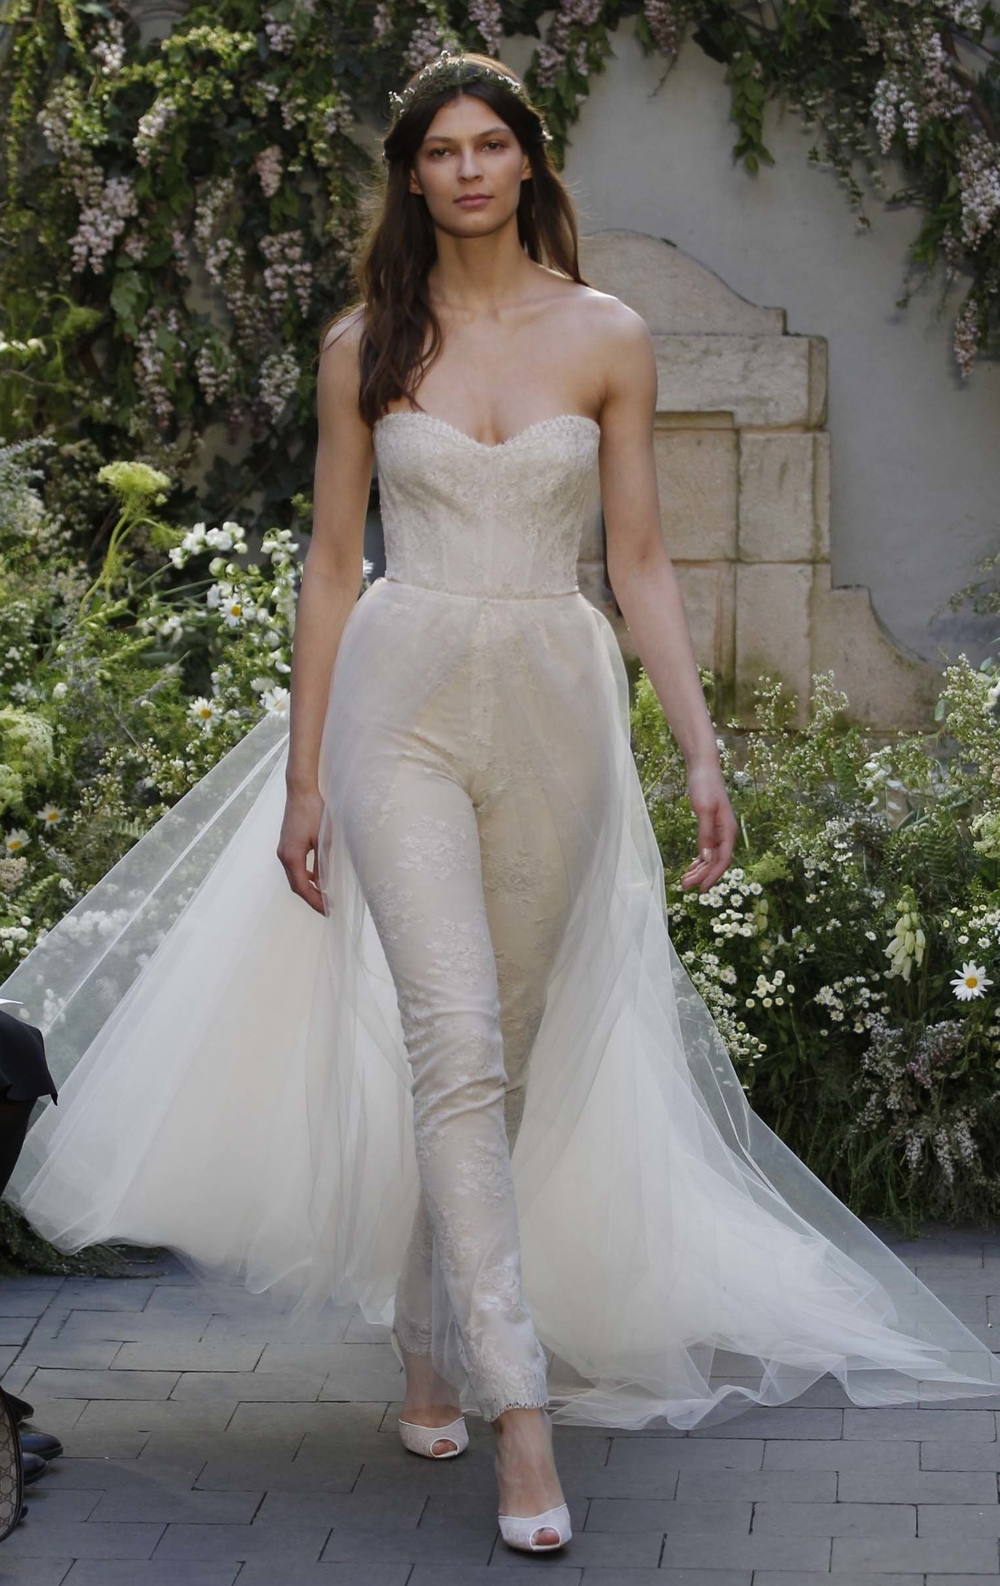 10-monique-lhuillier-bridal-spring-17.jpg